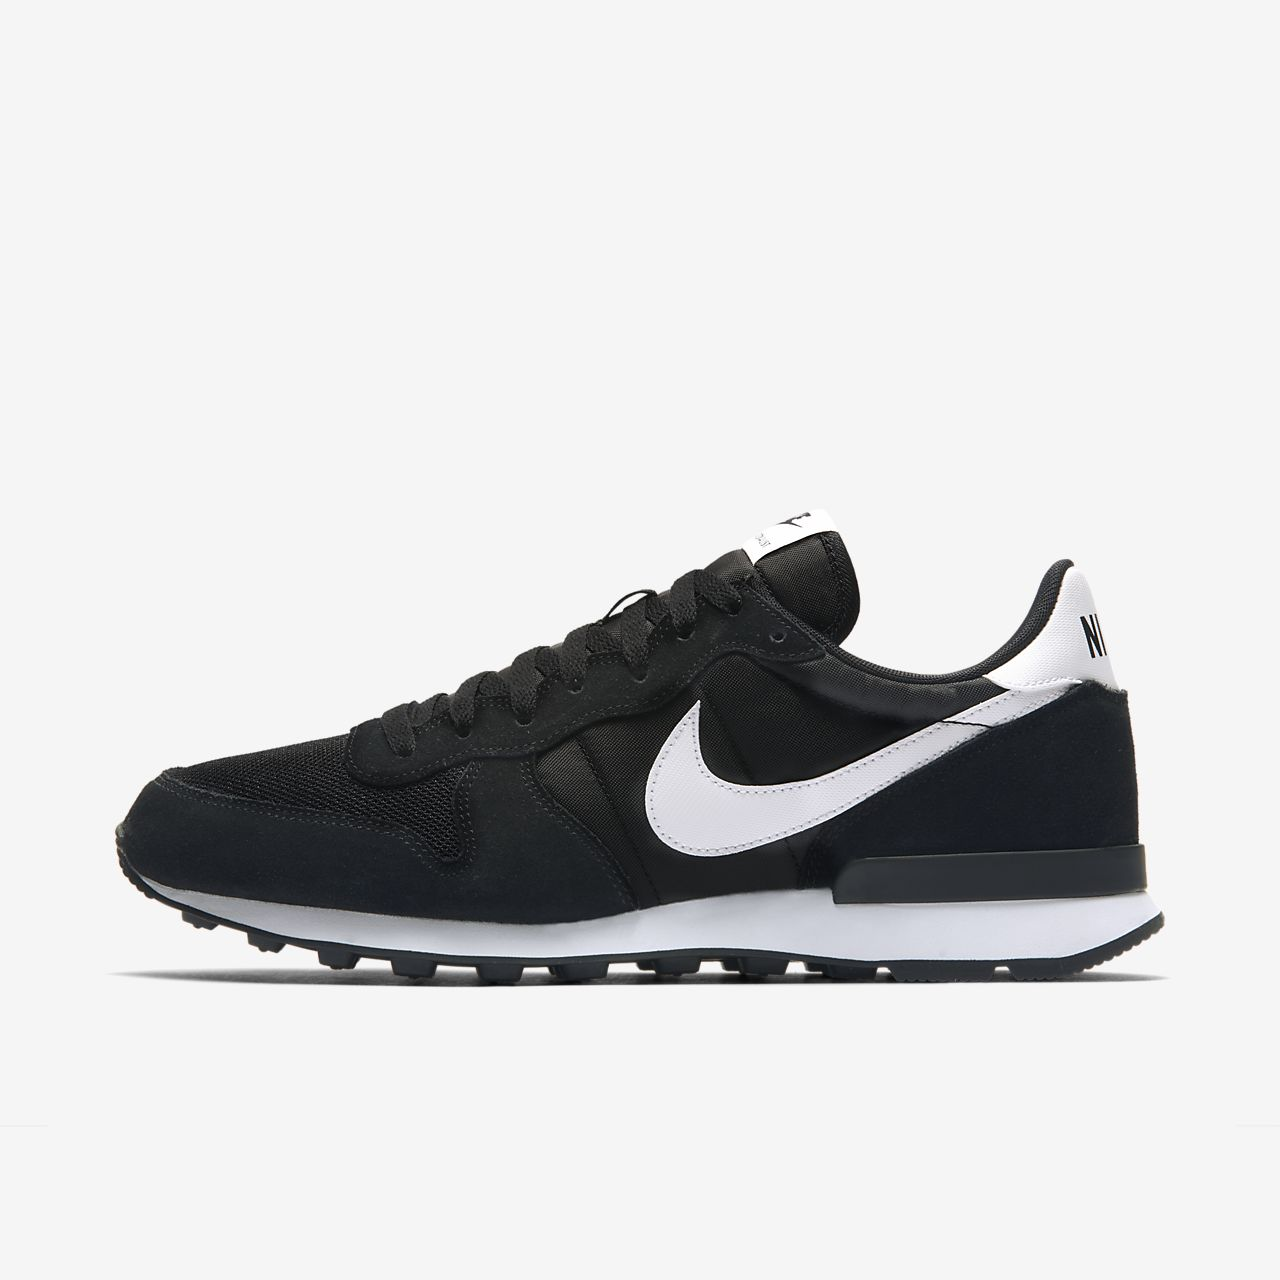 new style 0d61a d0785 Chaussure Nike Nike Nike Internationalist Pour Ca 9cae7c